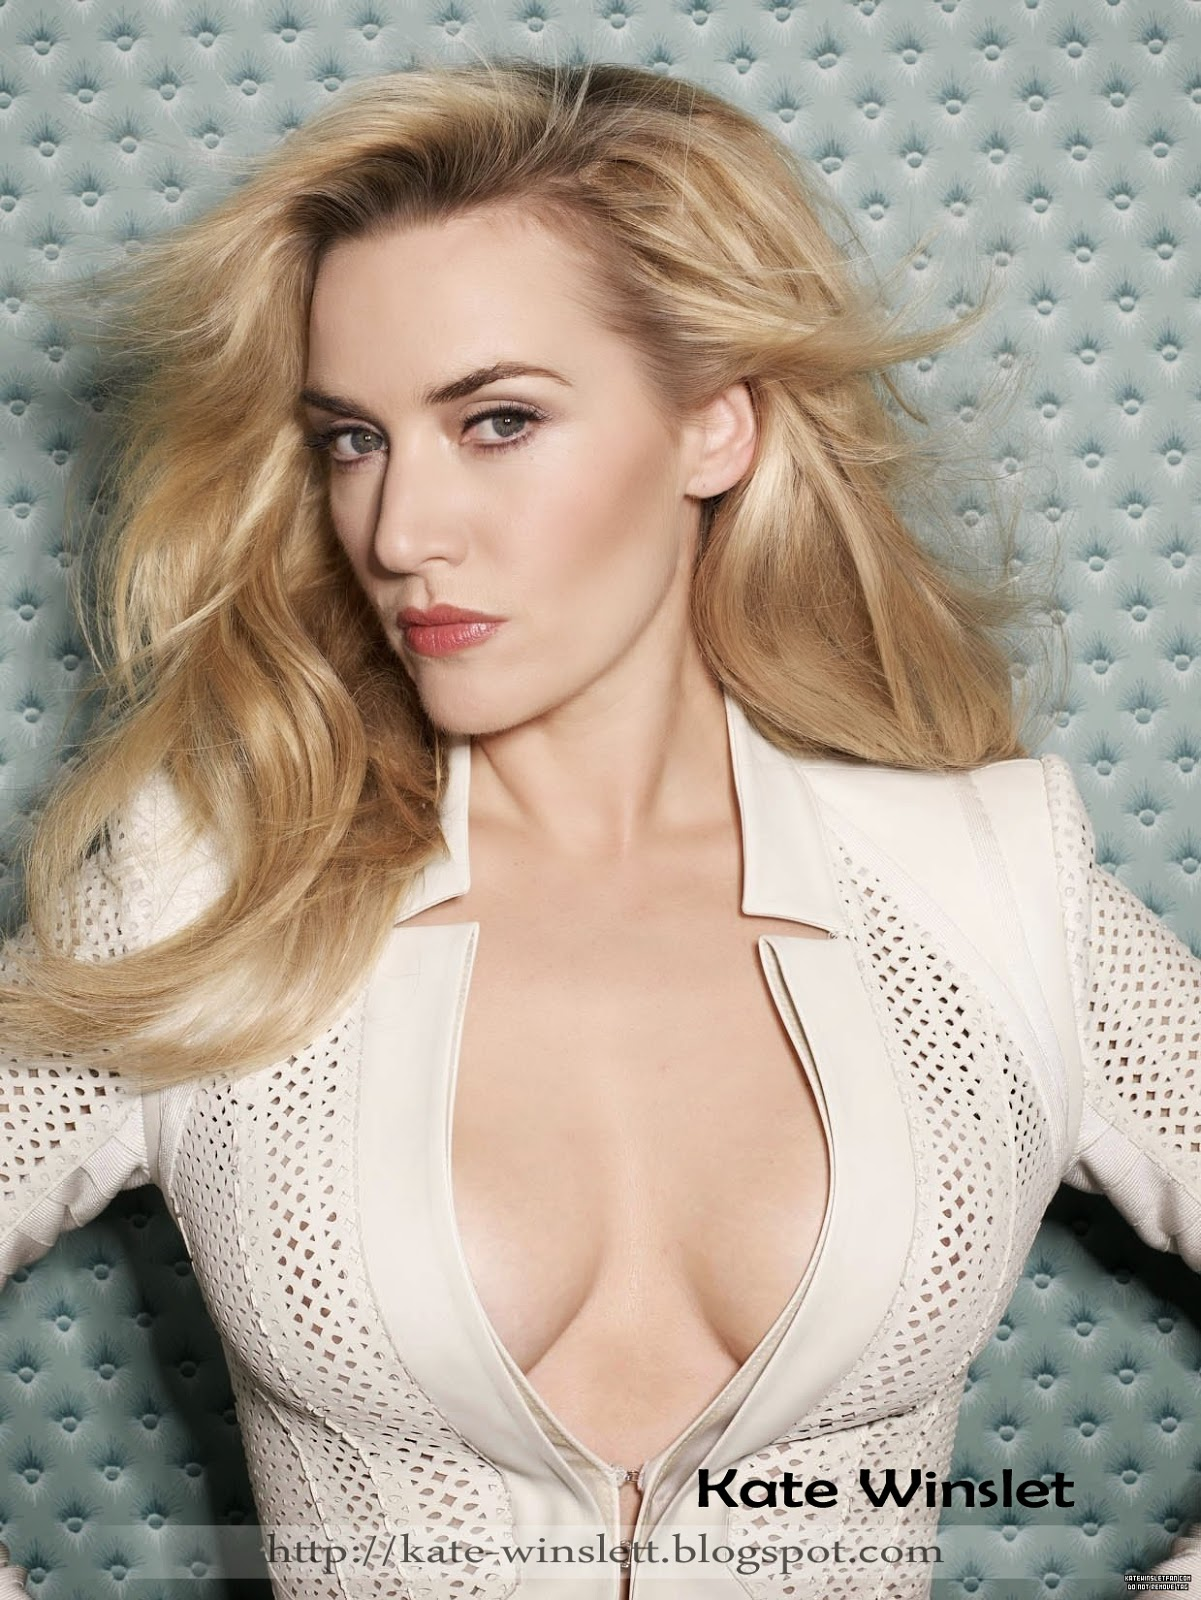 Kate winslet sex pic-5108